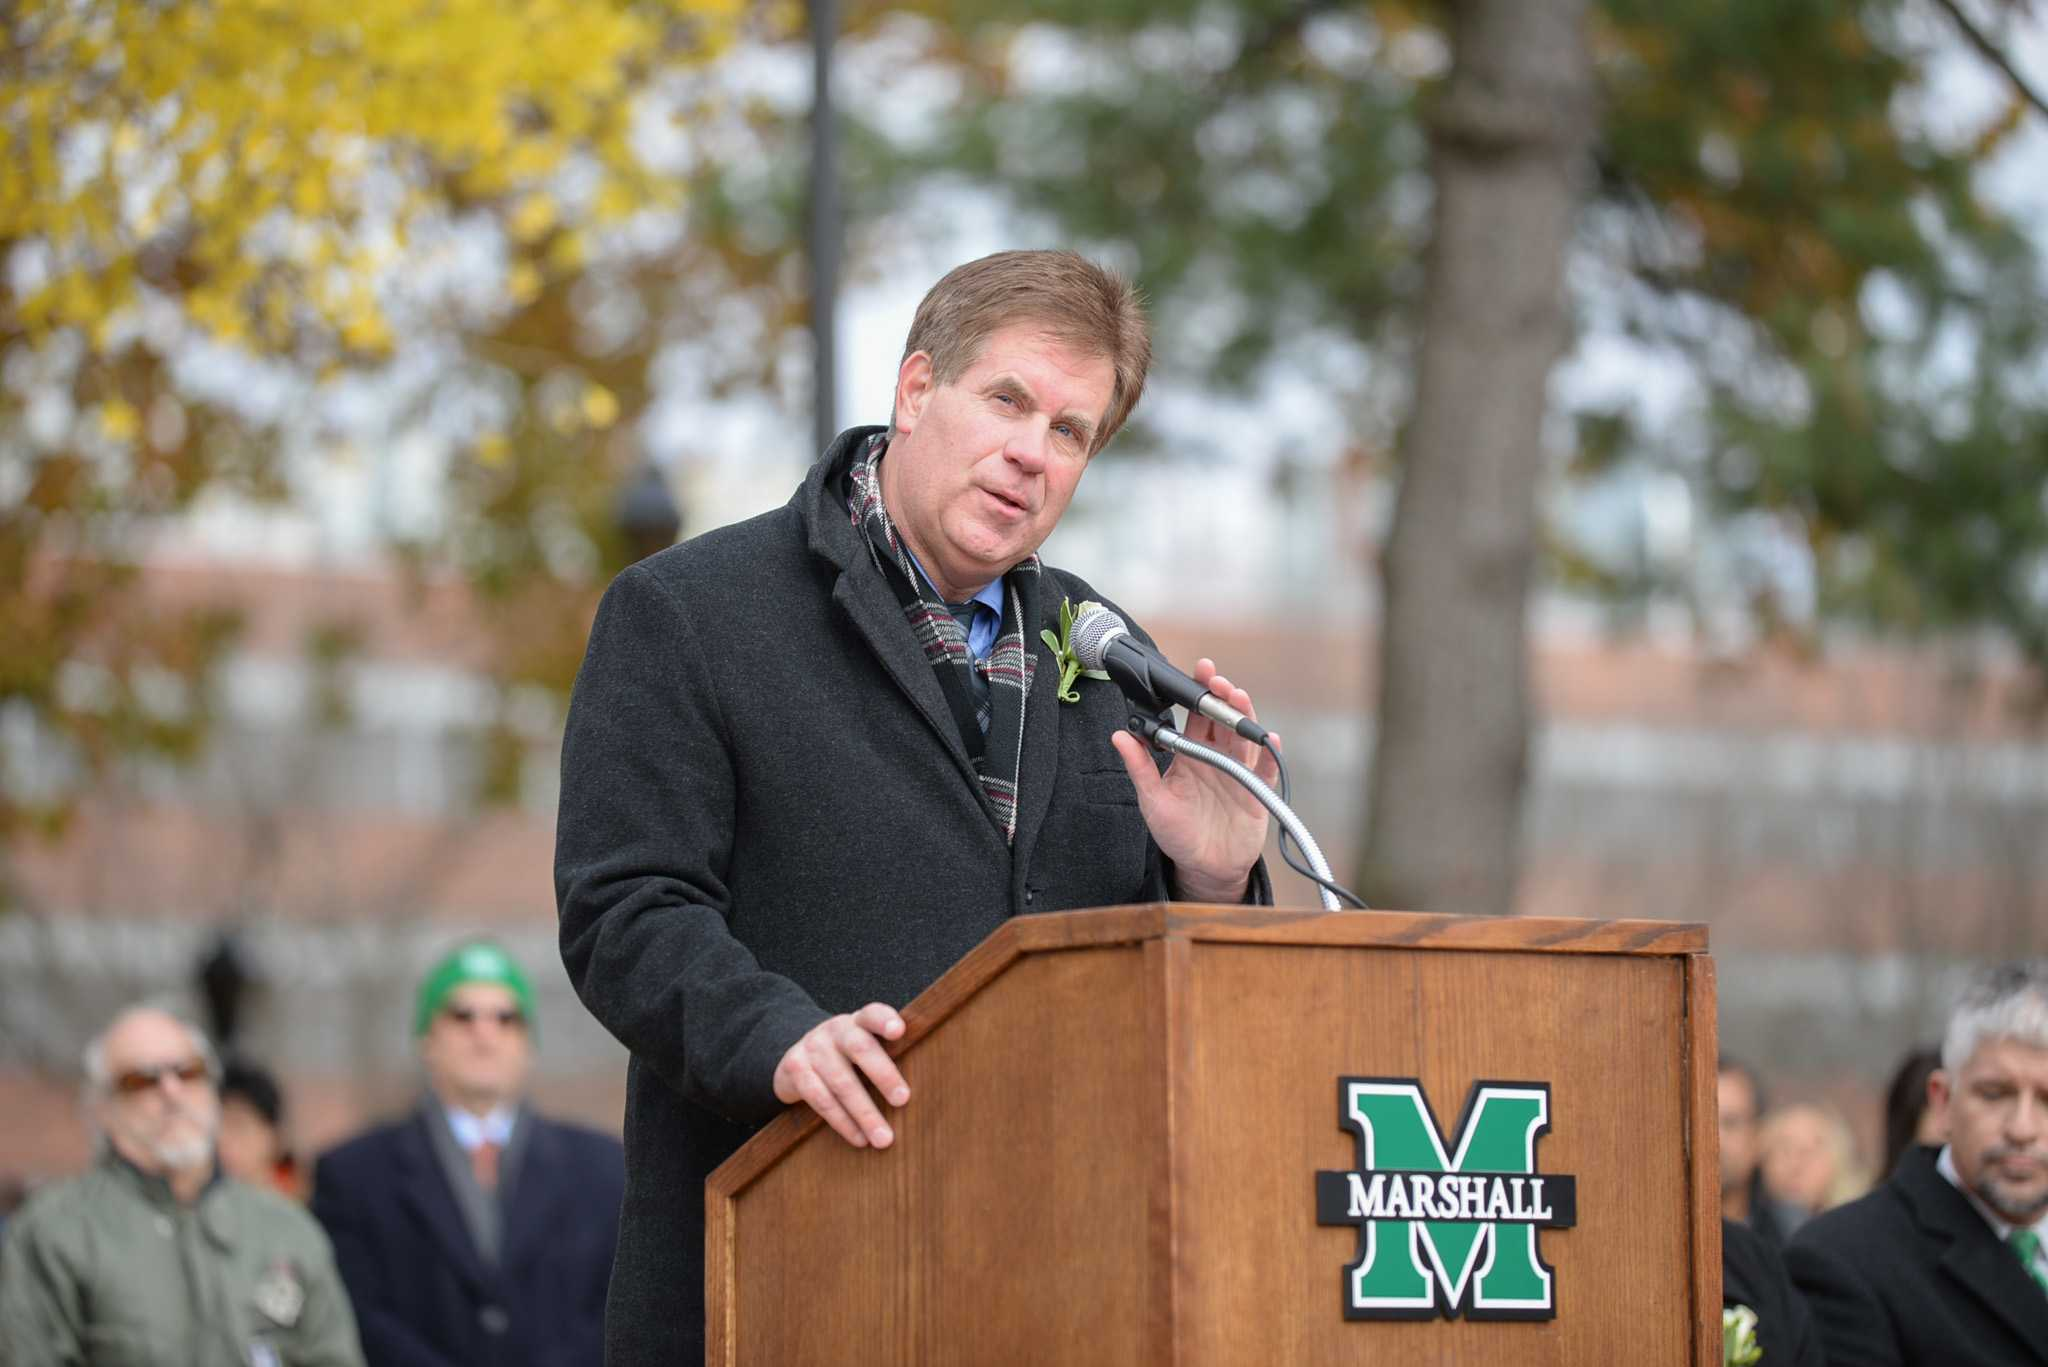 Mike Hamrick, athletic director, delivers a speech during the 44th annual memorial service on Friday at the Memorial Student Center Plaza.